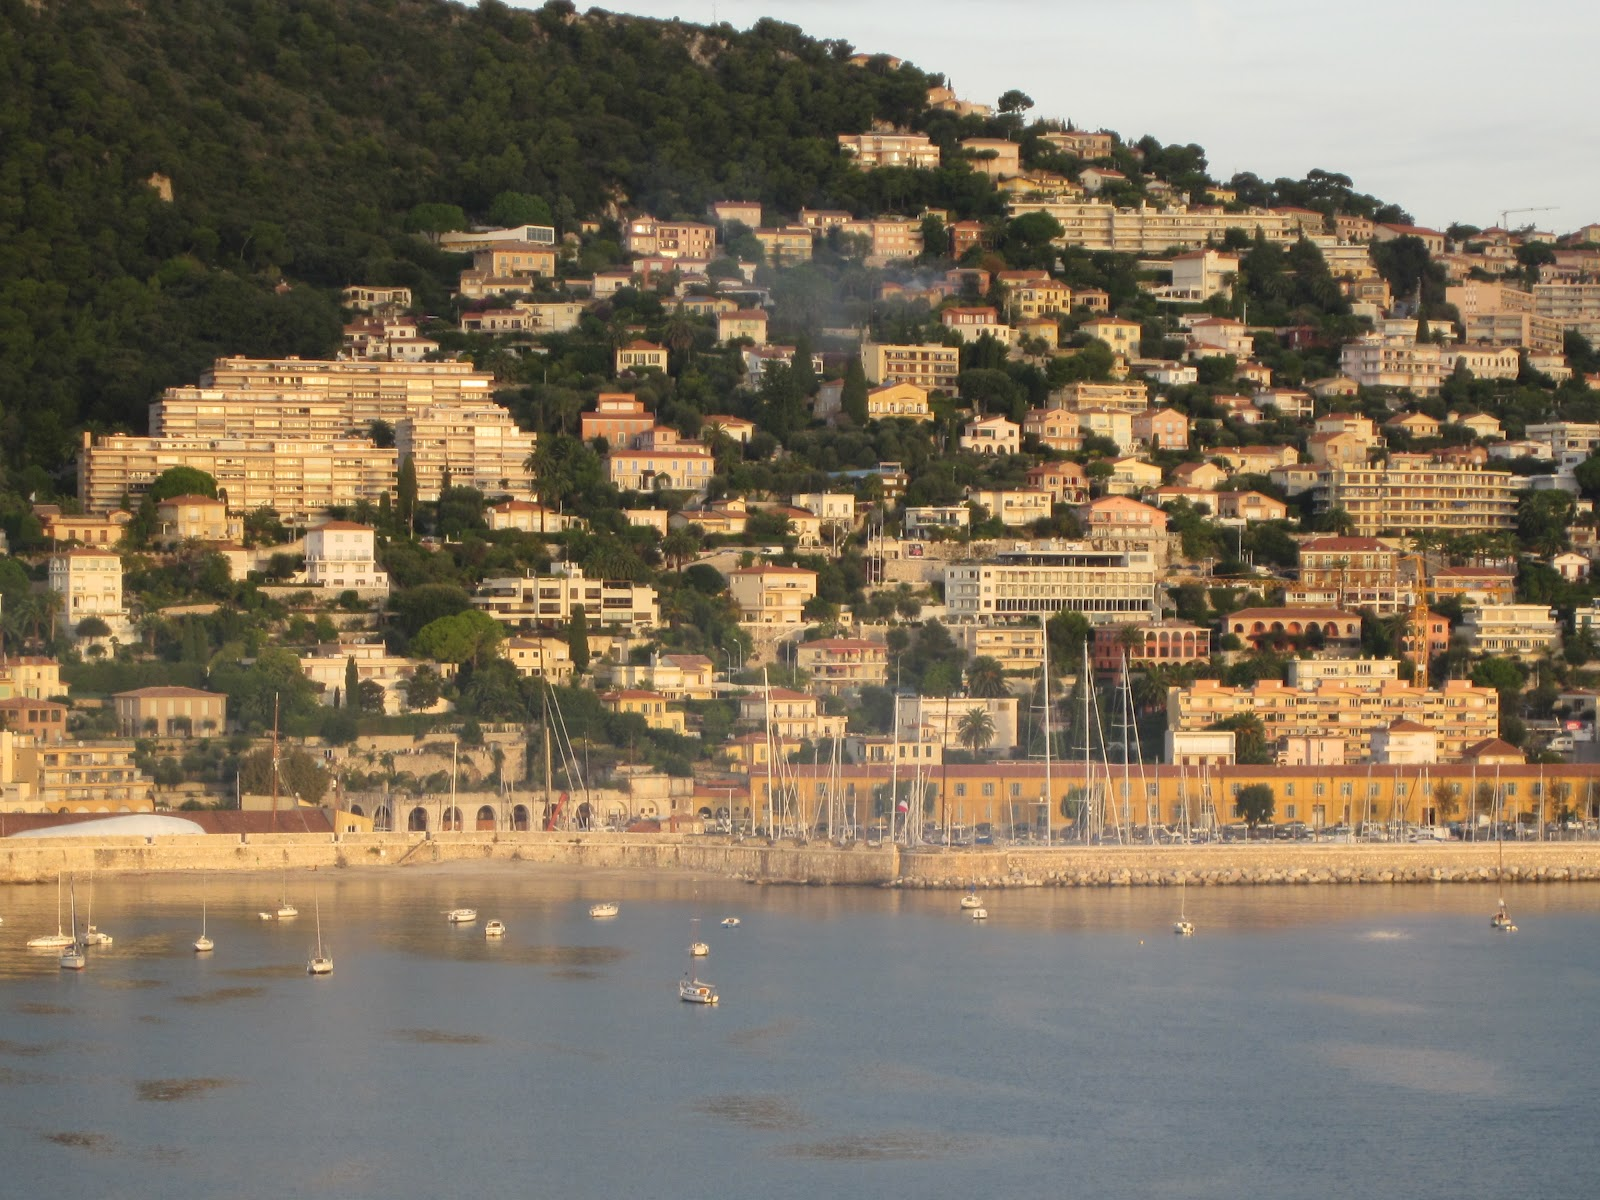 James bond locations villefranche sur mer part 2 - Port de la darse villefranche sur mer ...